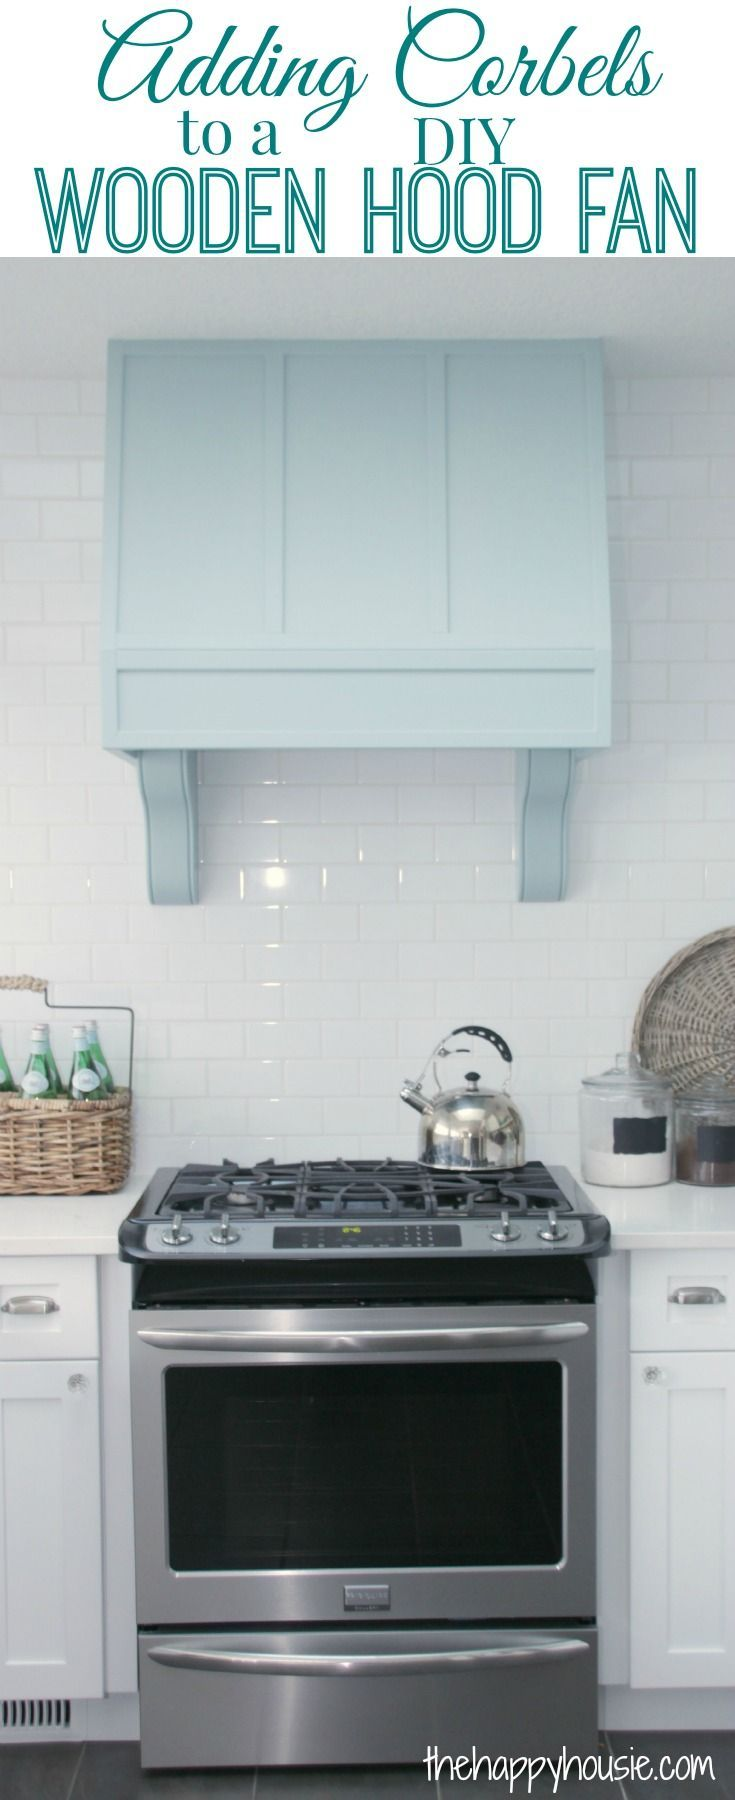 Adding Corbels to a DIY Wooden Hood Fan with Osborne Wood Products ...